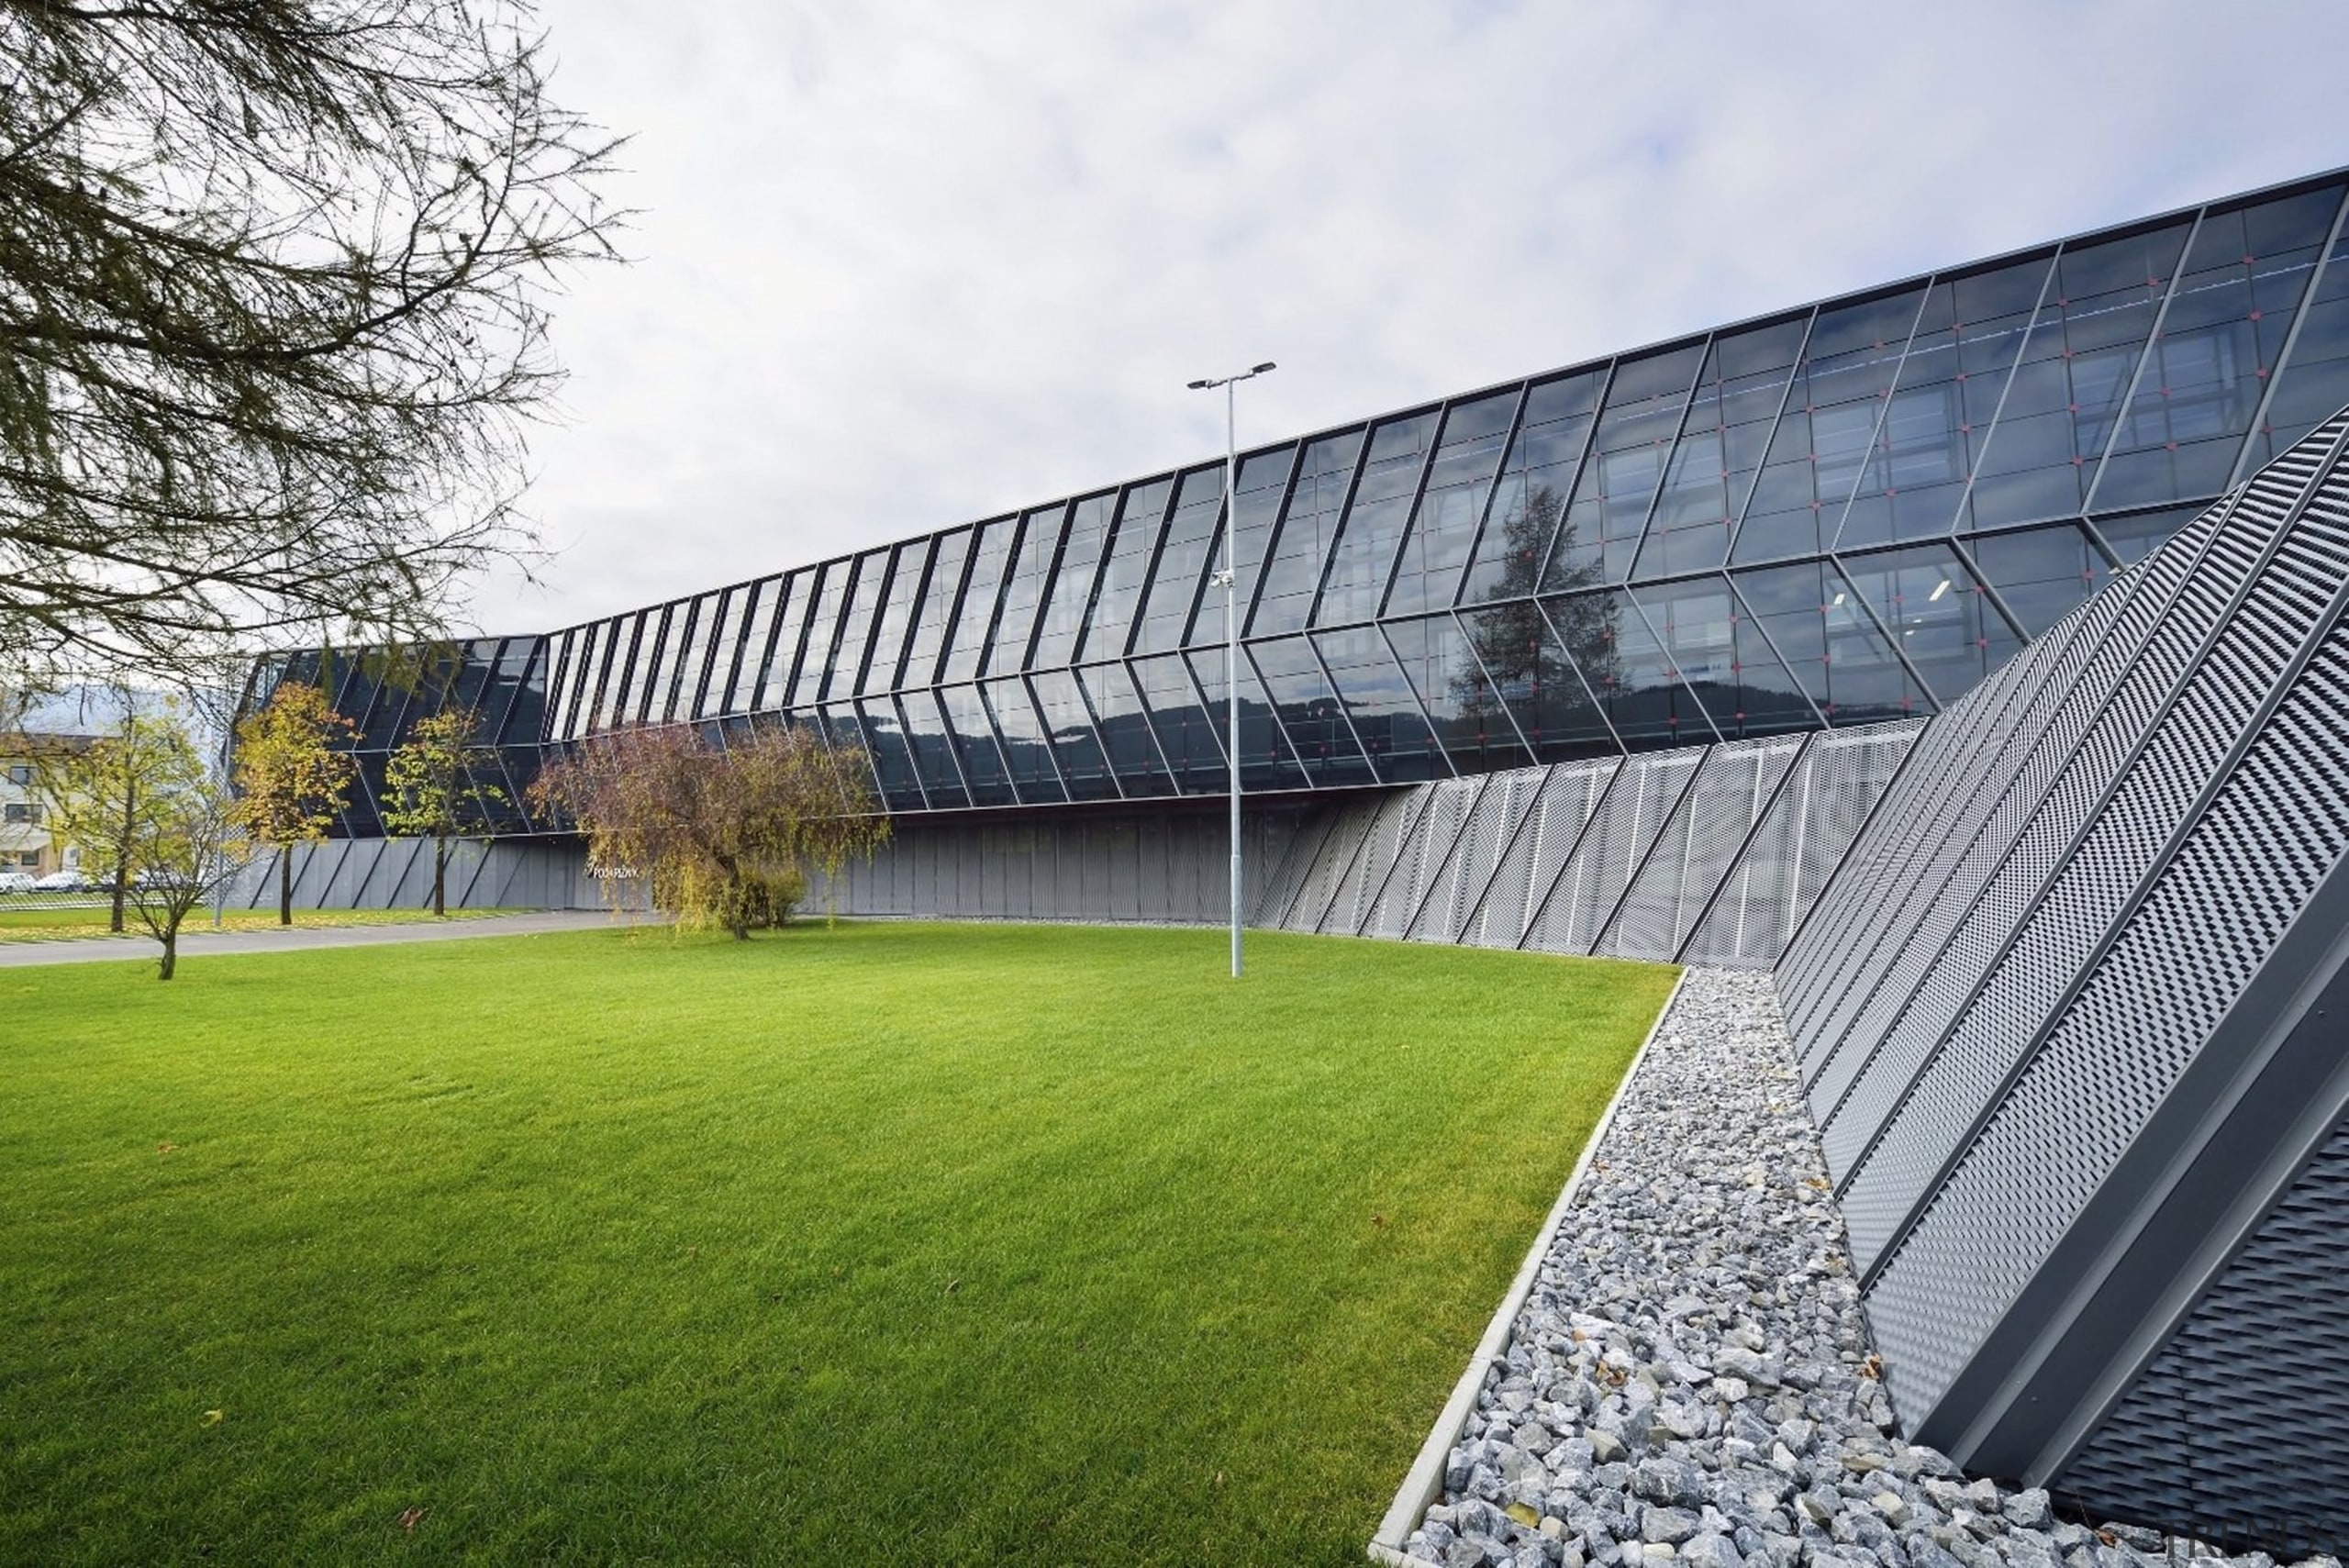 Architect: SuperformPhotography by Miran Kambič architecture, building, campus, corporate headquarters, facade, grass, headquarters, house, lawn, plant, real estate, roof, sport venue, stadium, structure, white